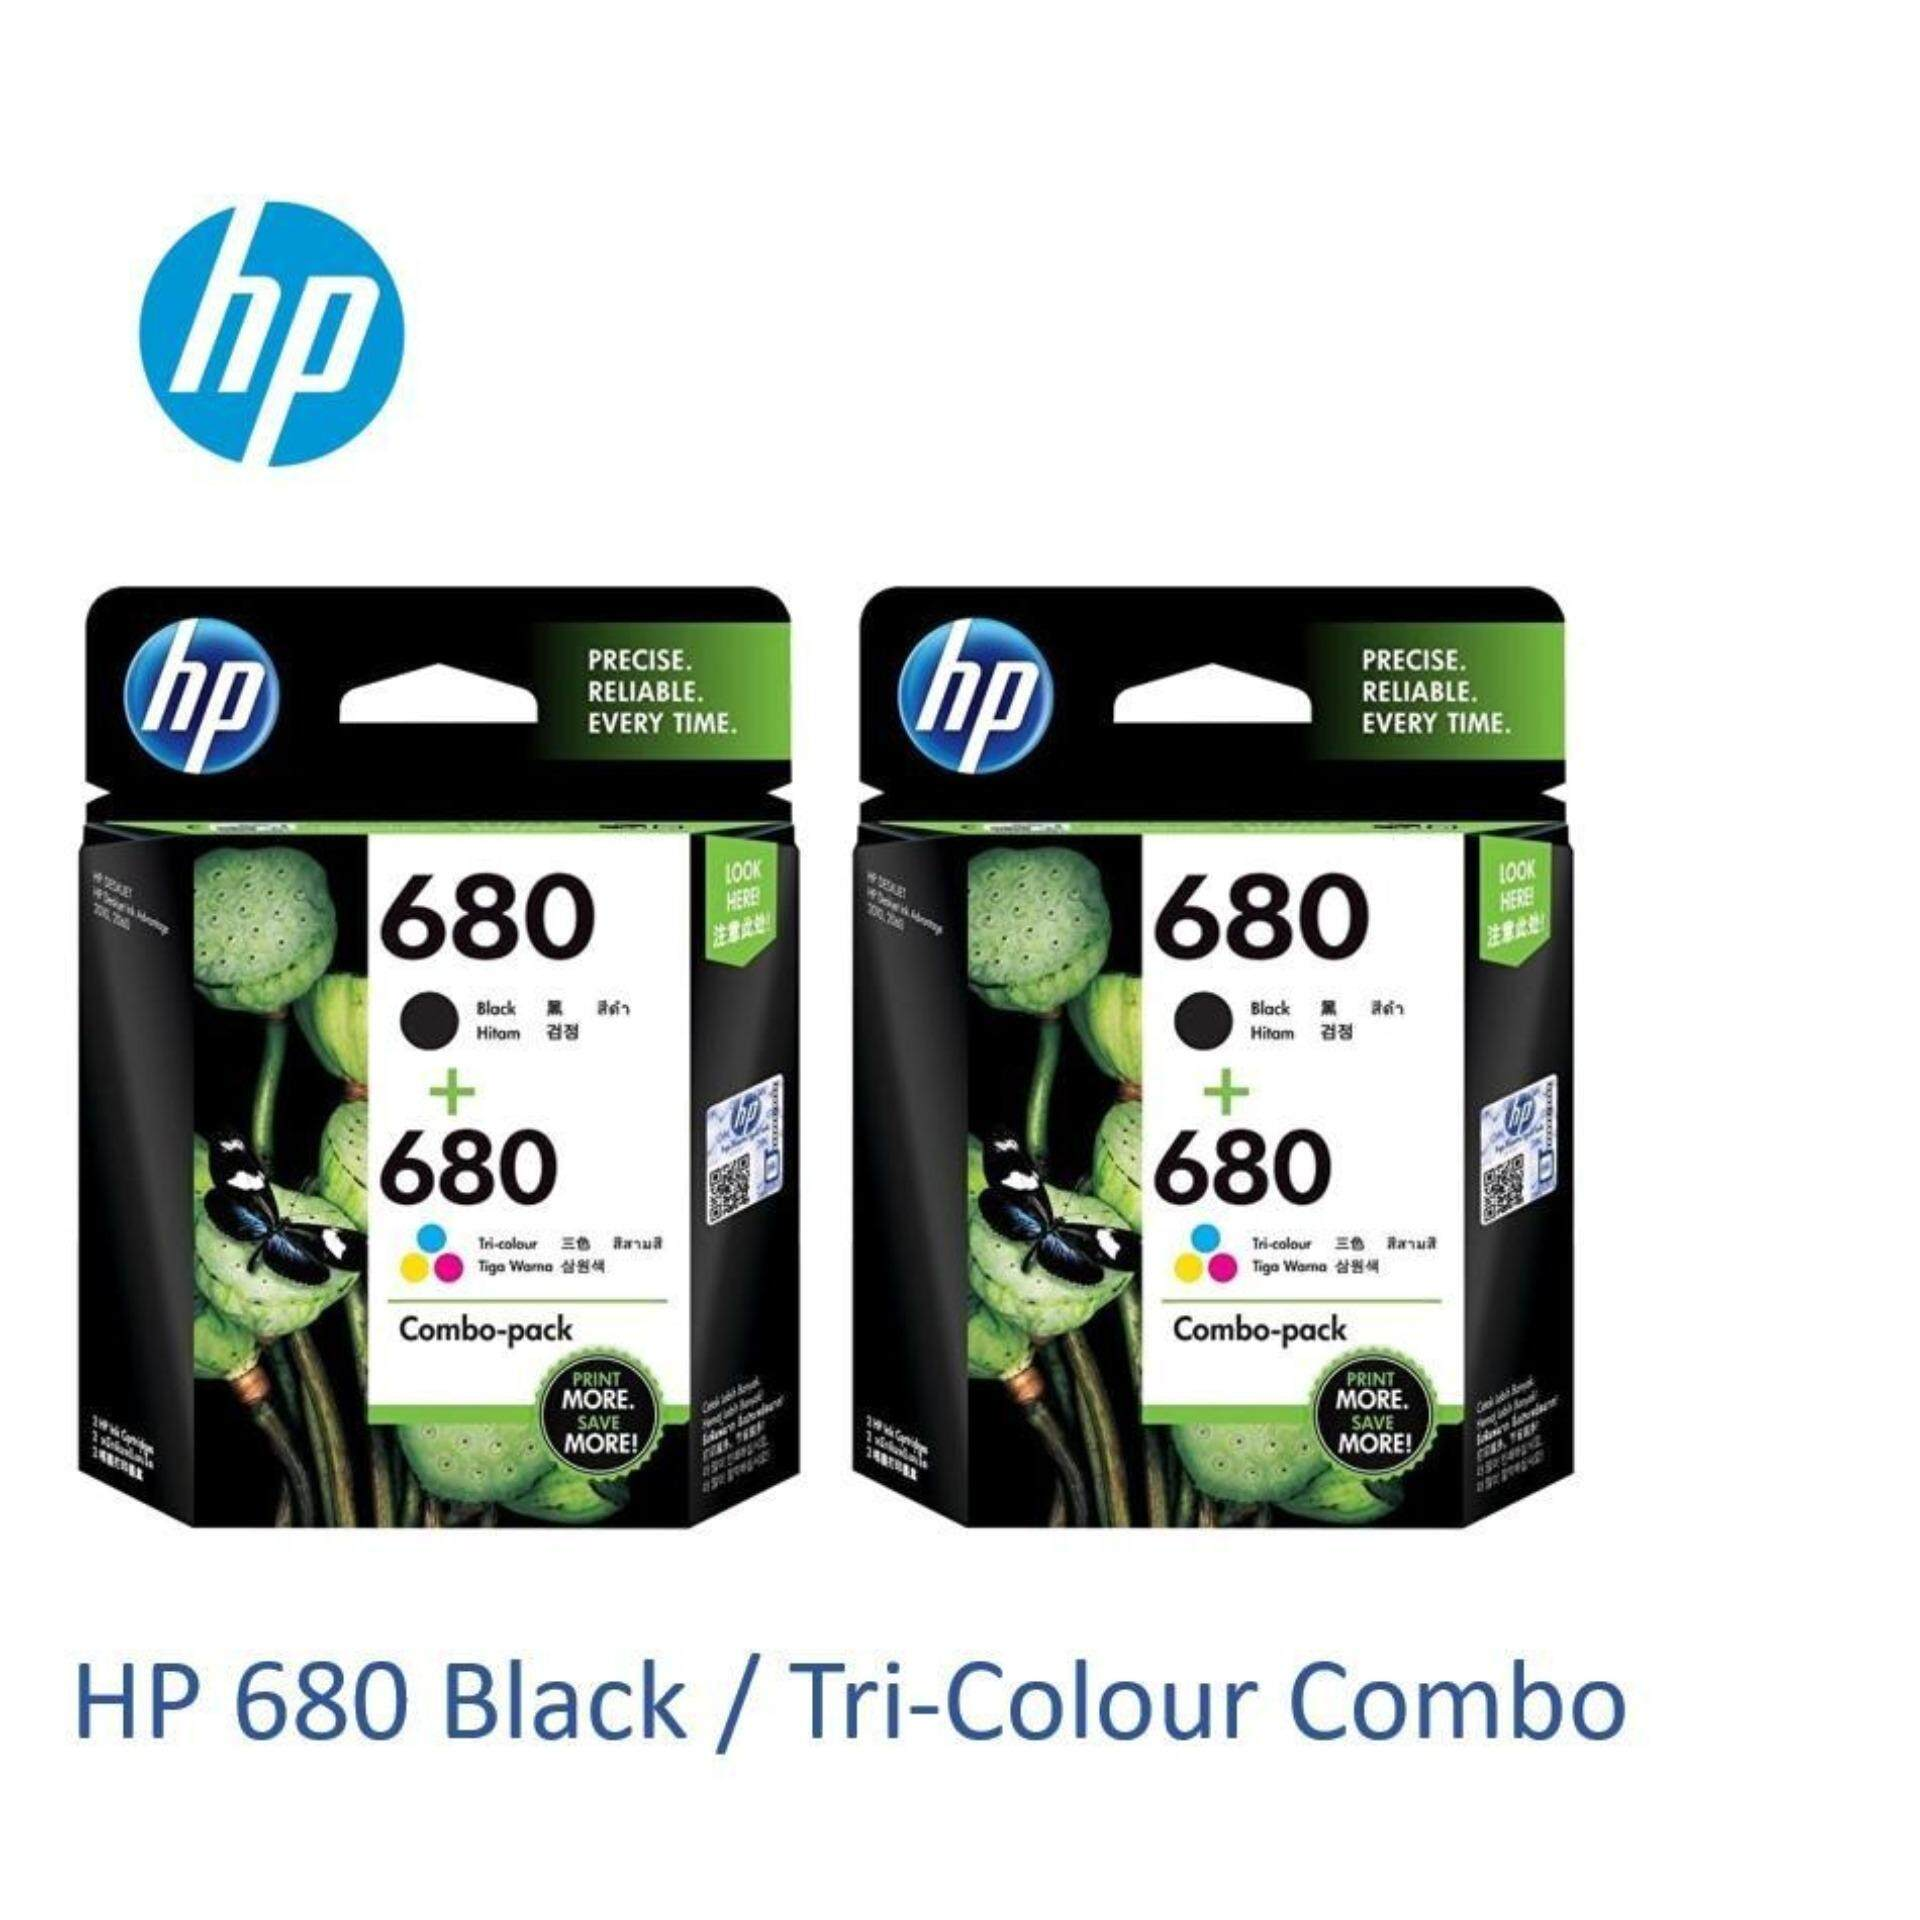 Sell Hp 680 Combo Cheapest Best Quality My Store Cartridge Black Myr 116